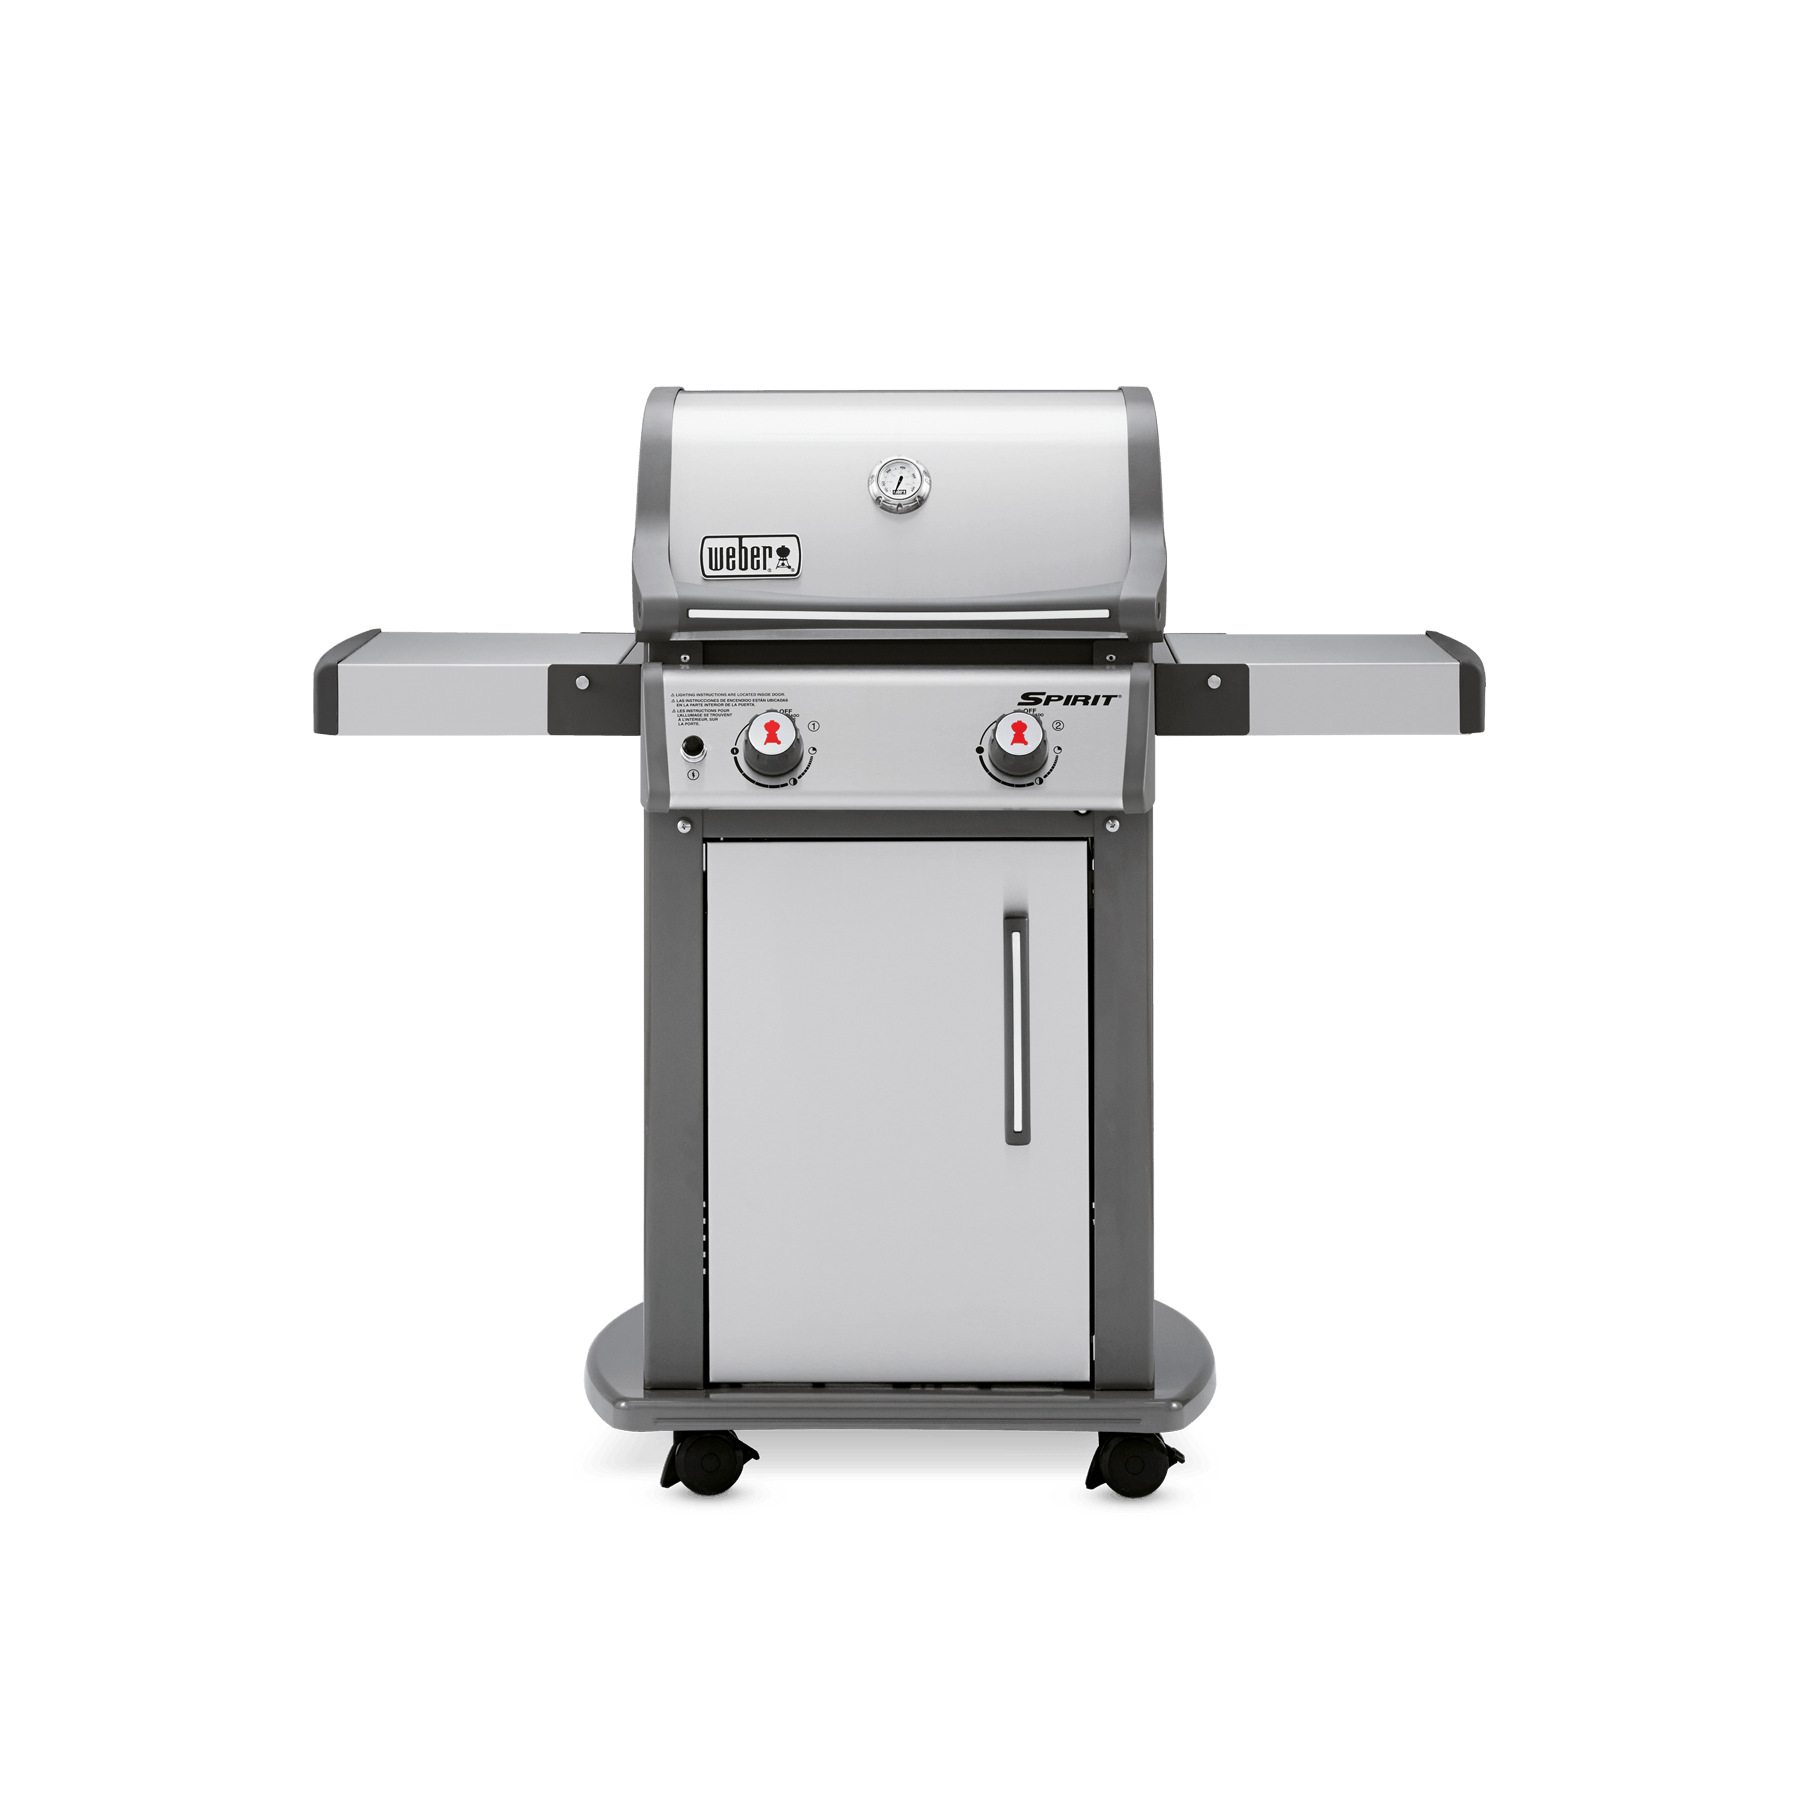 Spirit S-210 GBS Gas Grill